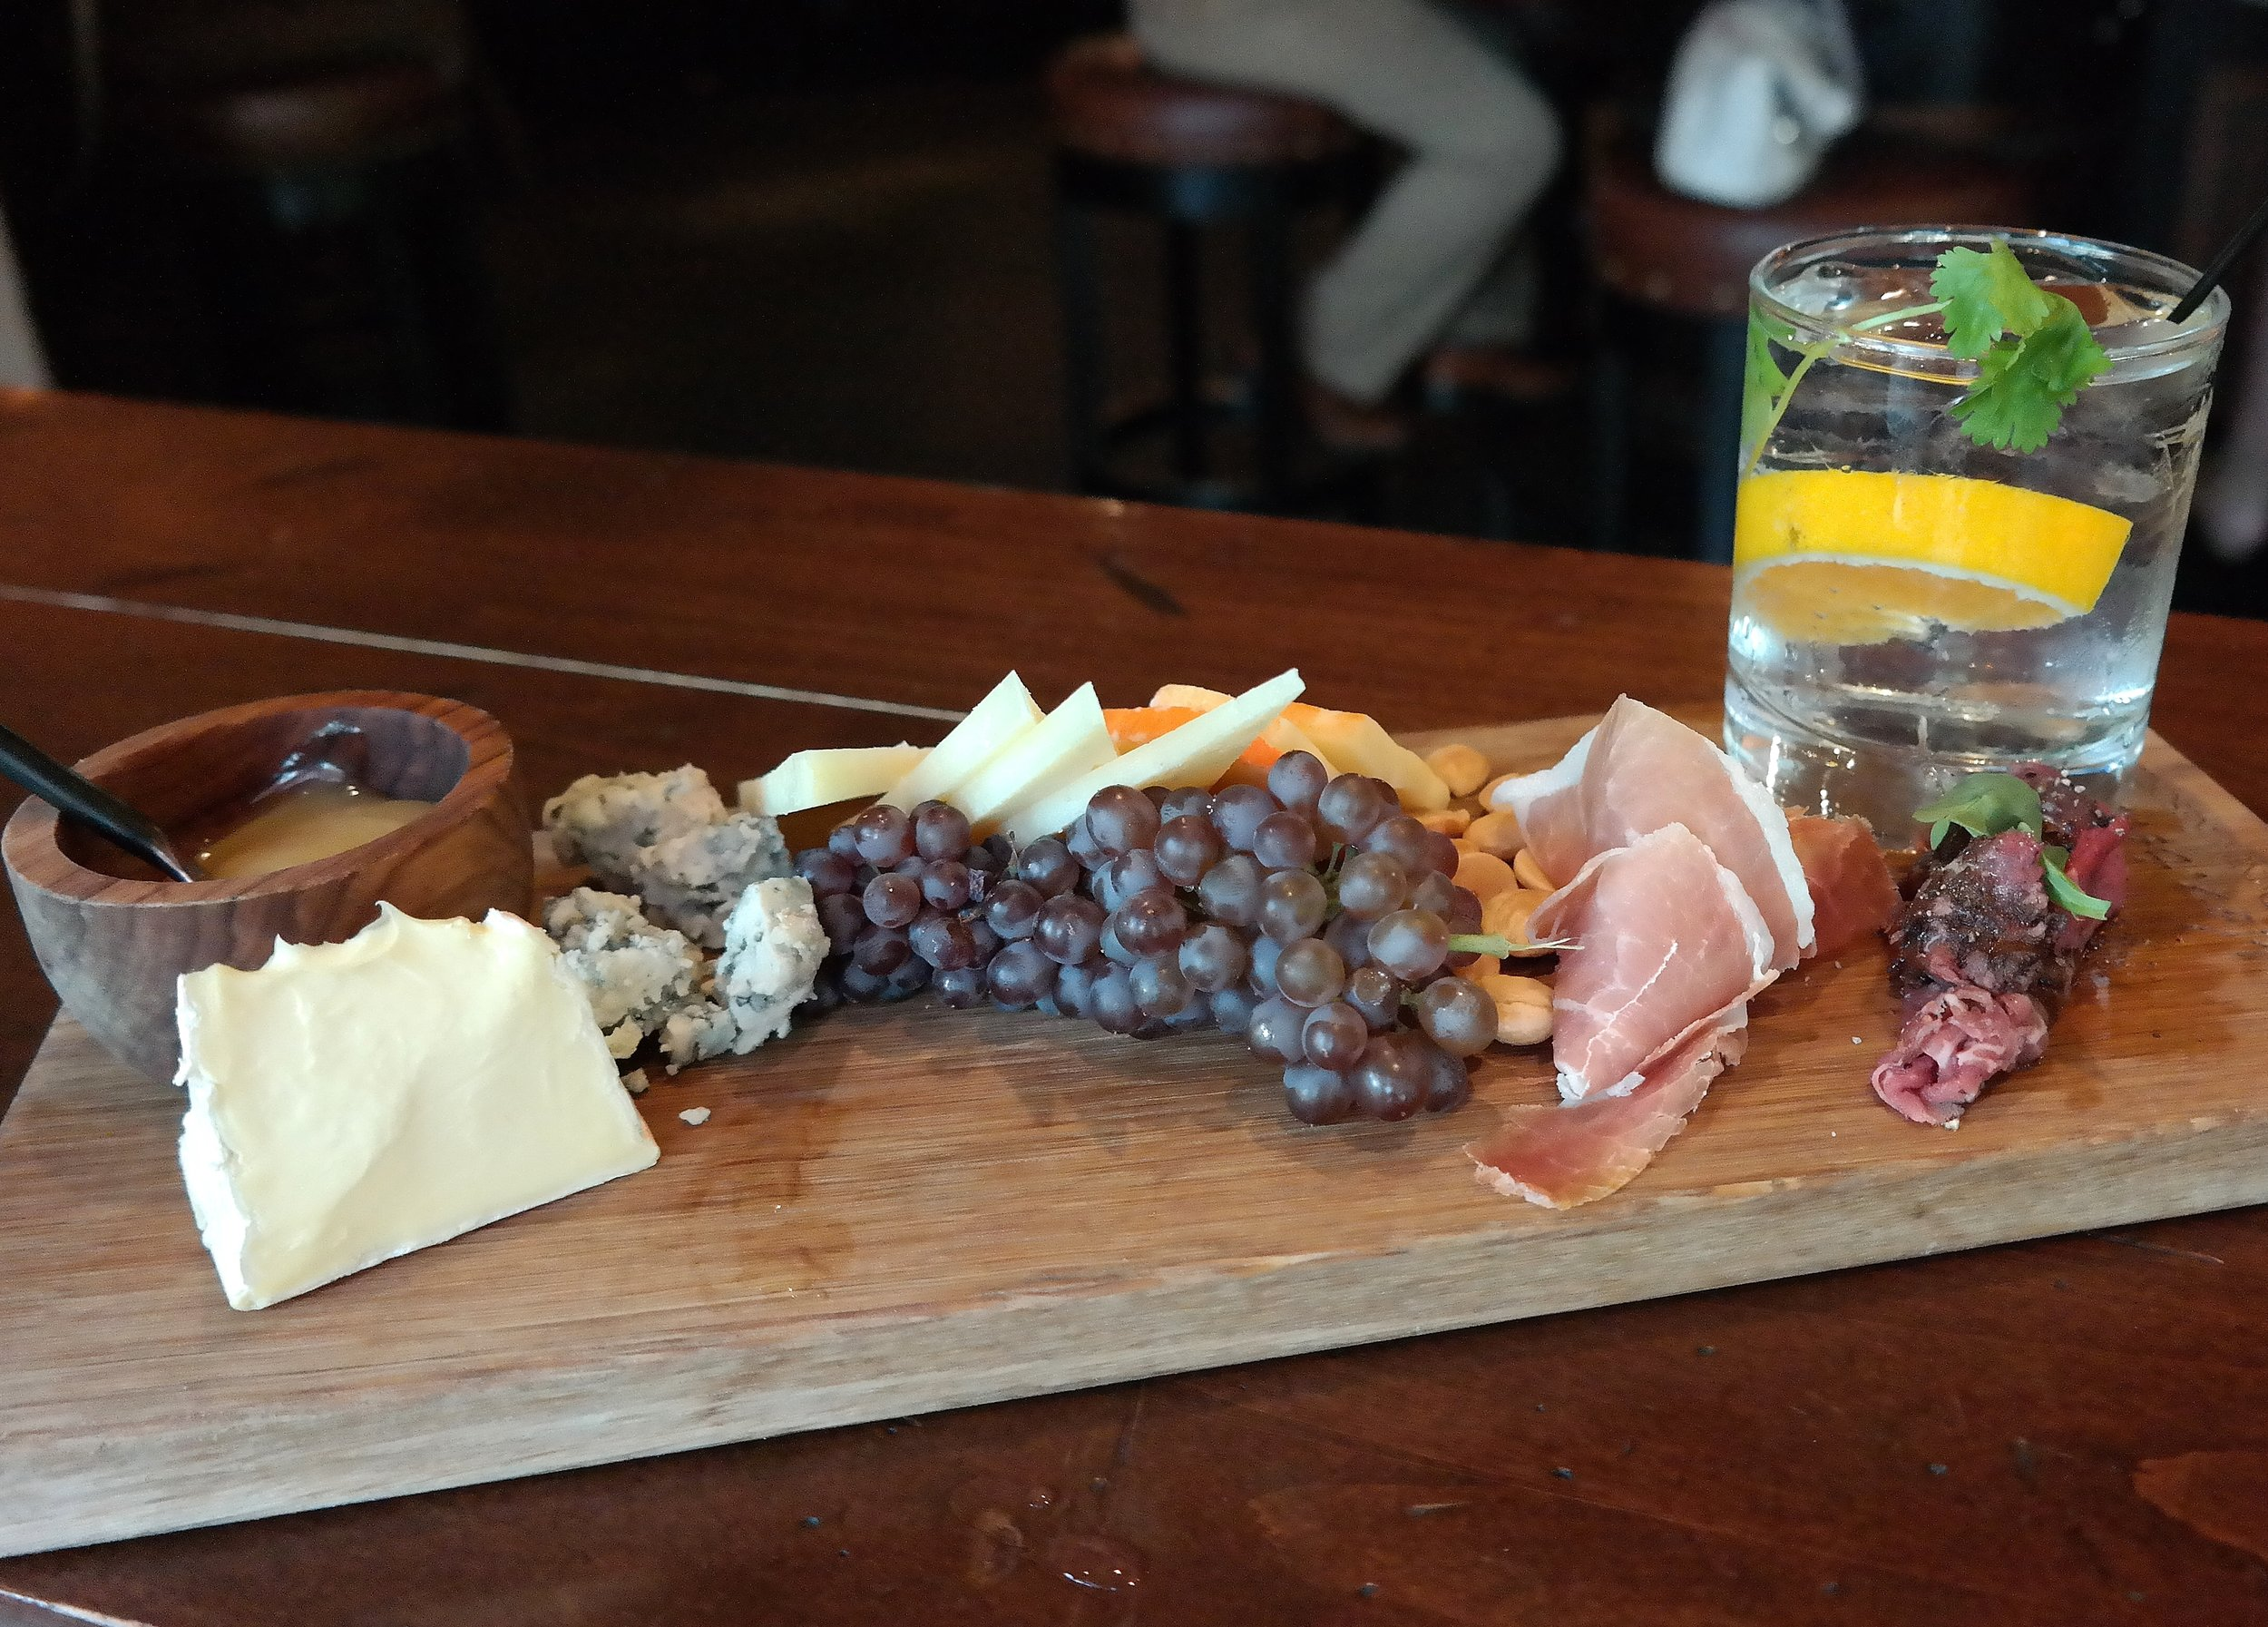 Prado's cheese board with Brie,Valdeón, Mahón, and Manchego cheeses, Meyer lemon curd, Marcona almonds, grapes, Jamón Serrano and lomo drizzled with balsamic